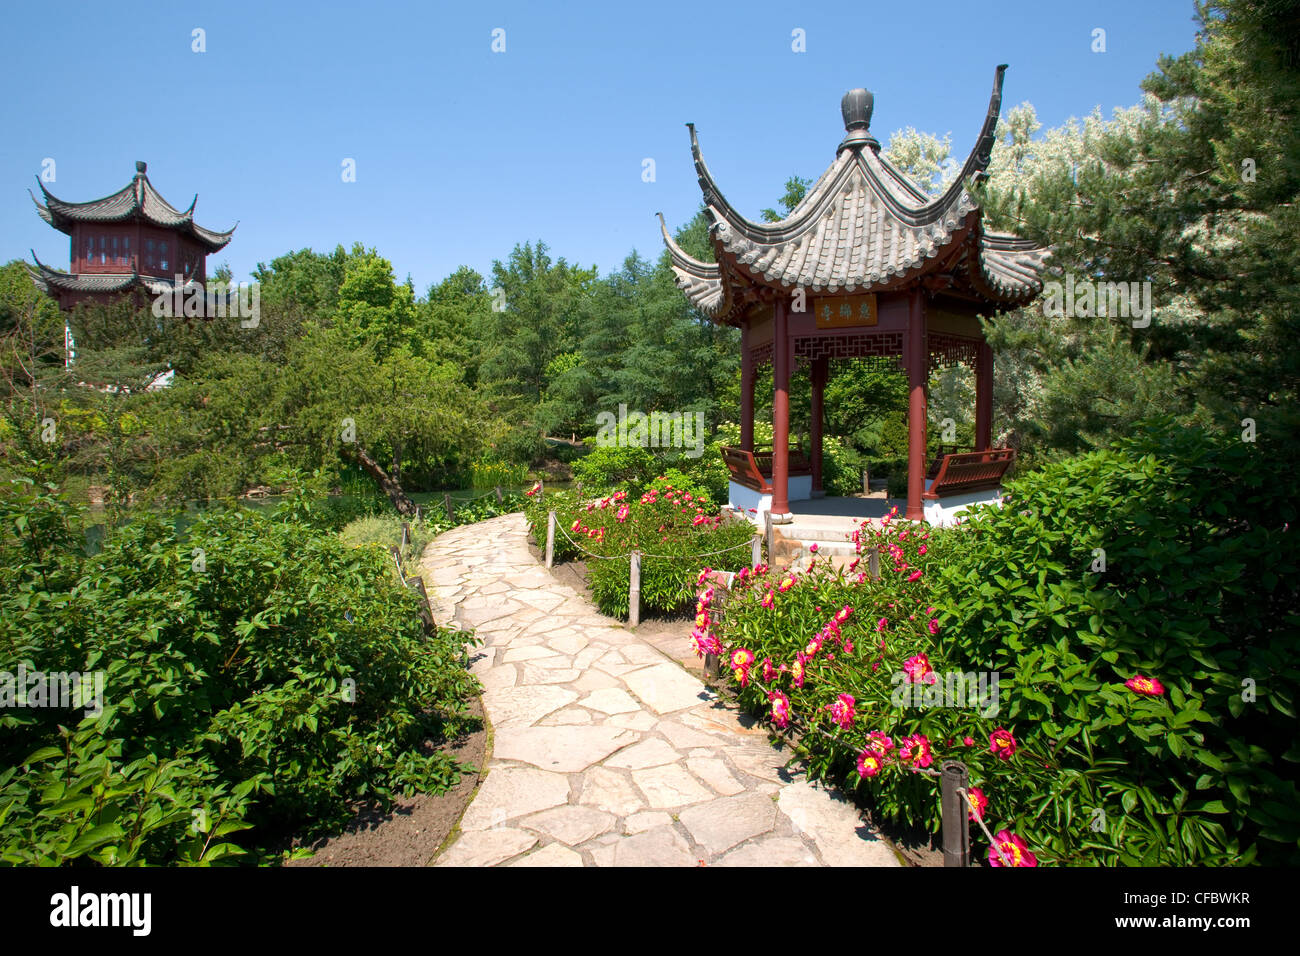 Pagoda in the Chinese Garden at the Montreal Botanic Gardens, Montreal, Quebec, Canada. - Stock Image